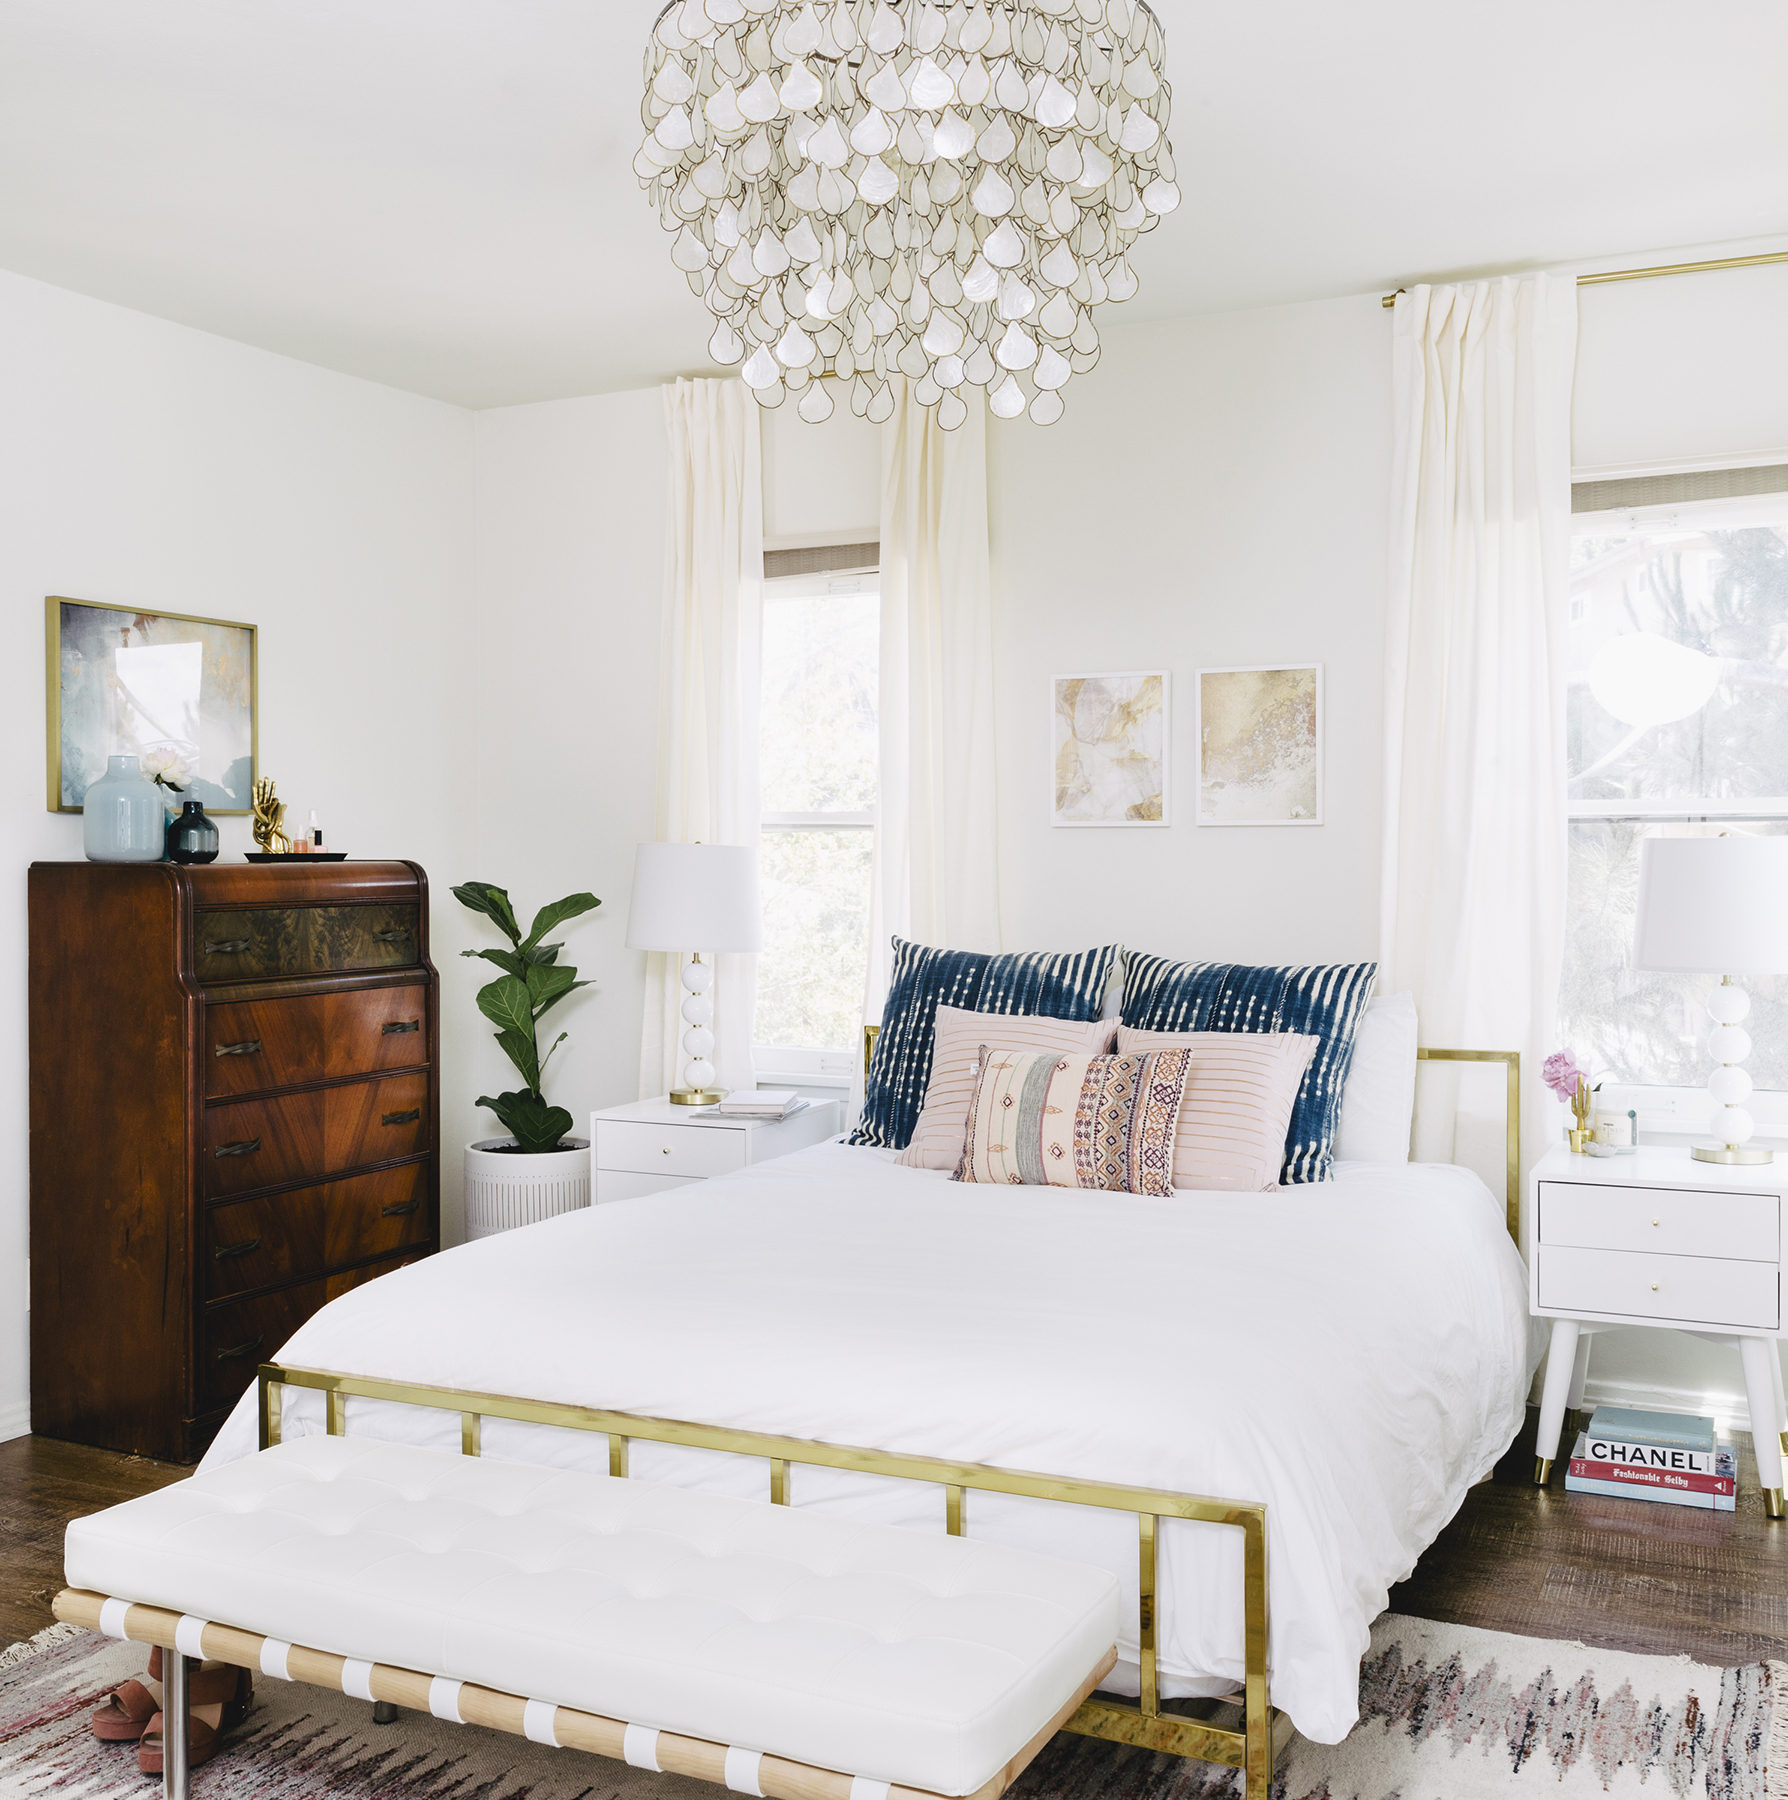 Small Decor Swaps for a Summer-Ready Bedroom